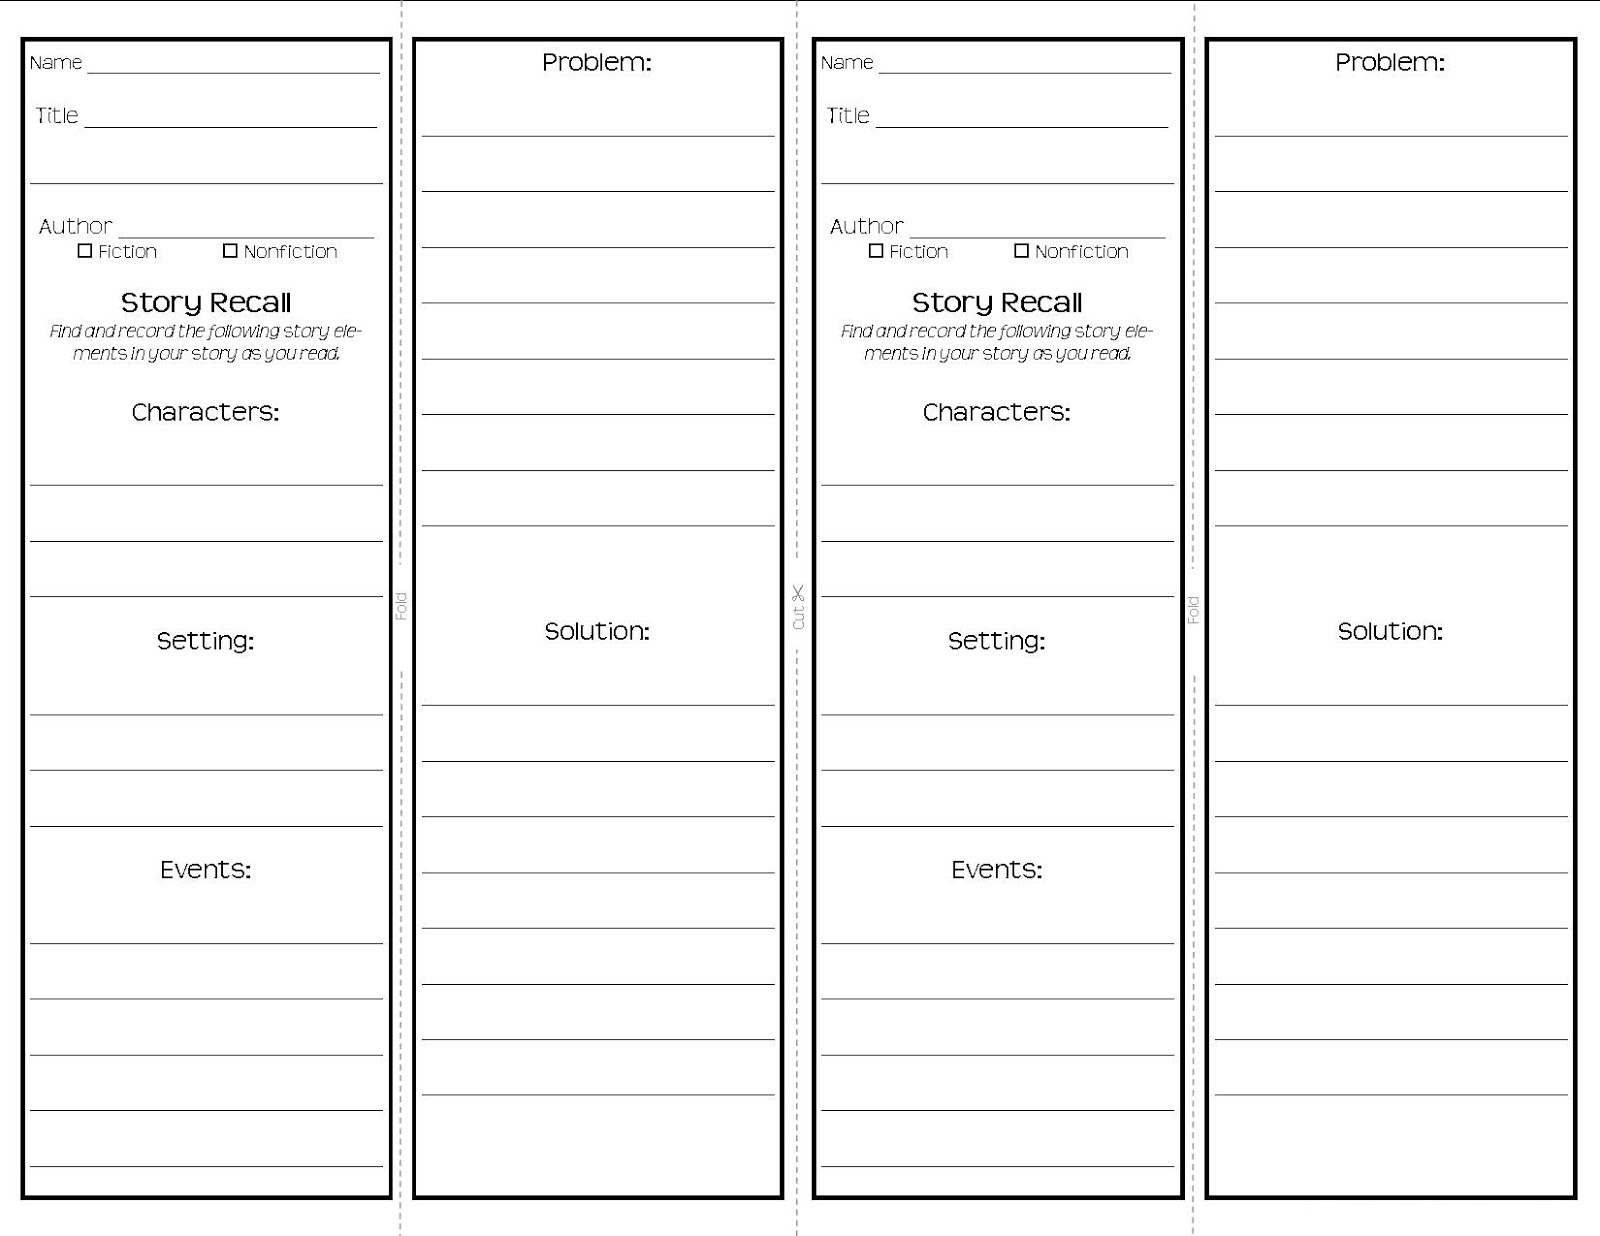 Bookmark Template Free from www.activityshelter.com